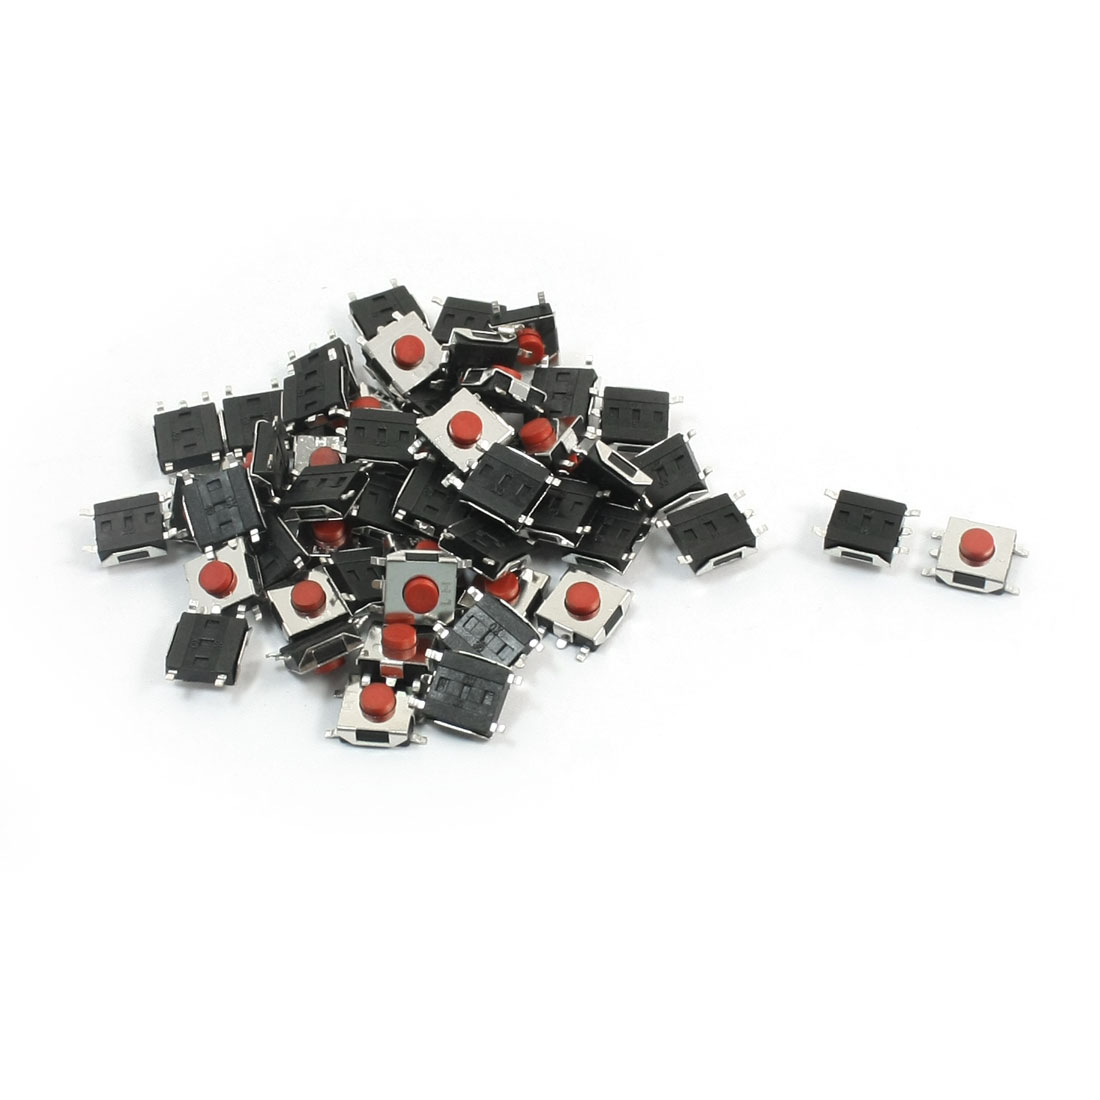 55Pcs Momentary Tact Tactile Push Button Switch 6mmx6mmx3.1mm 5-pin